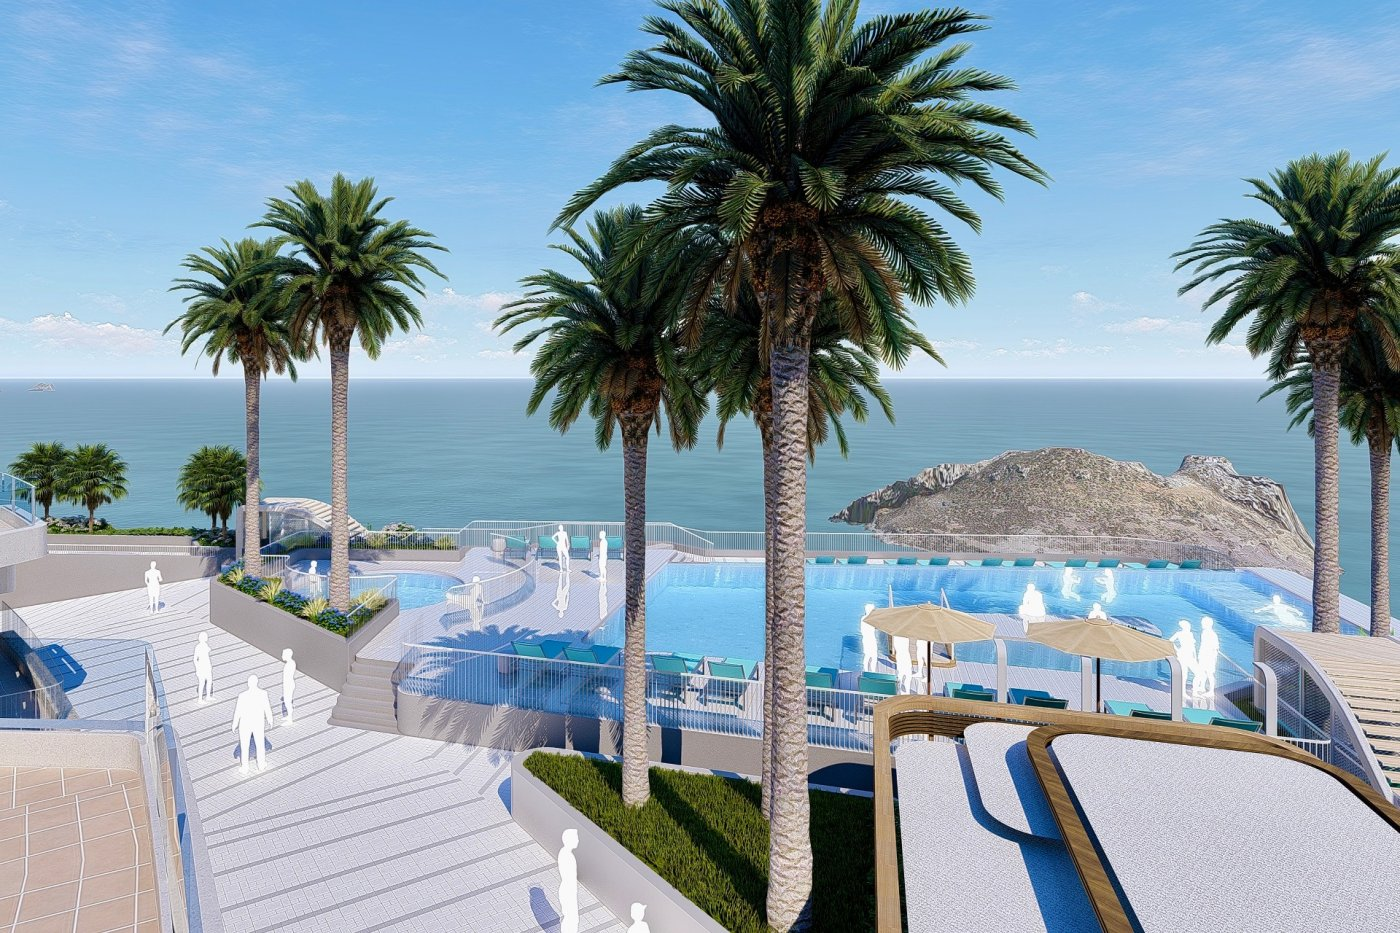 Image 8 Apartment ref 3265-03120 for sale in Isea Calma Spain - Quality Homes Costa Cálida